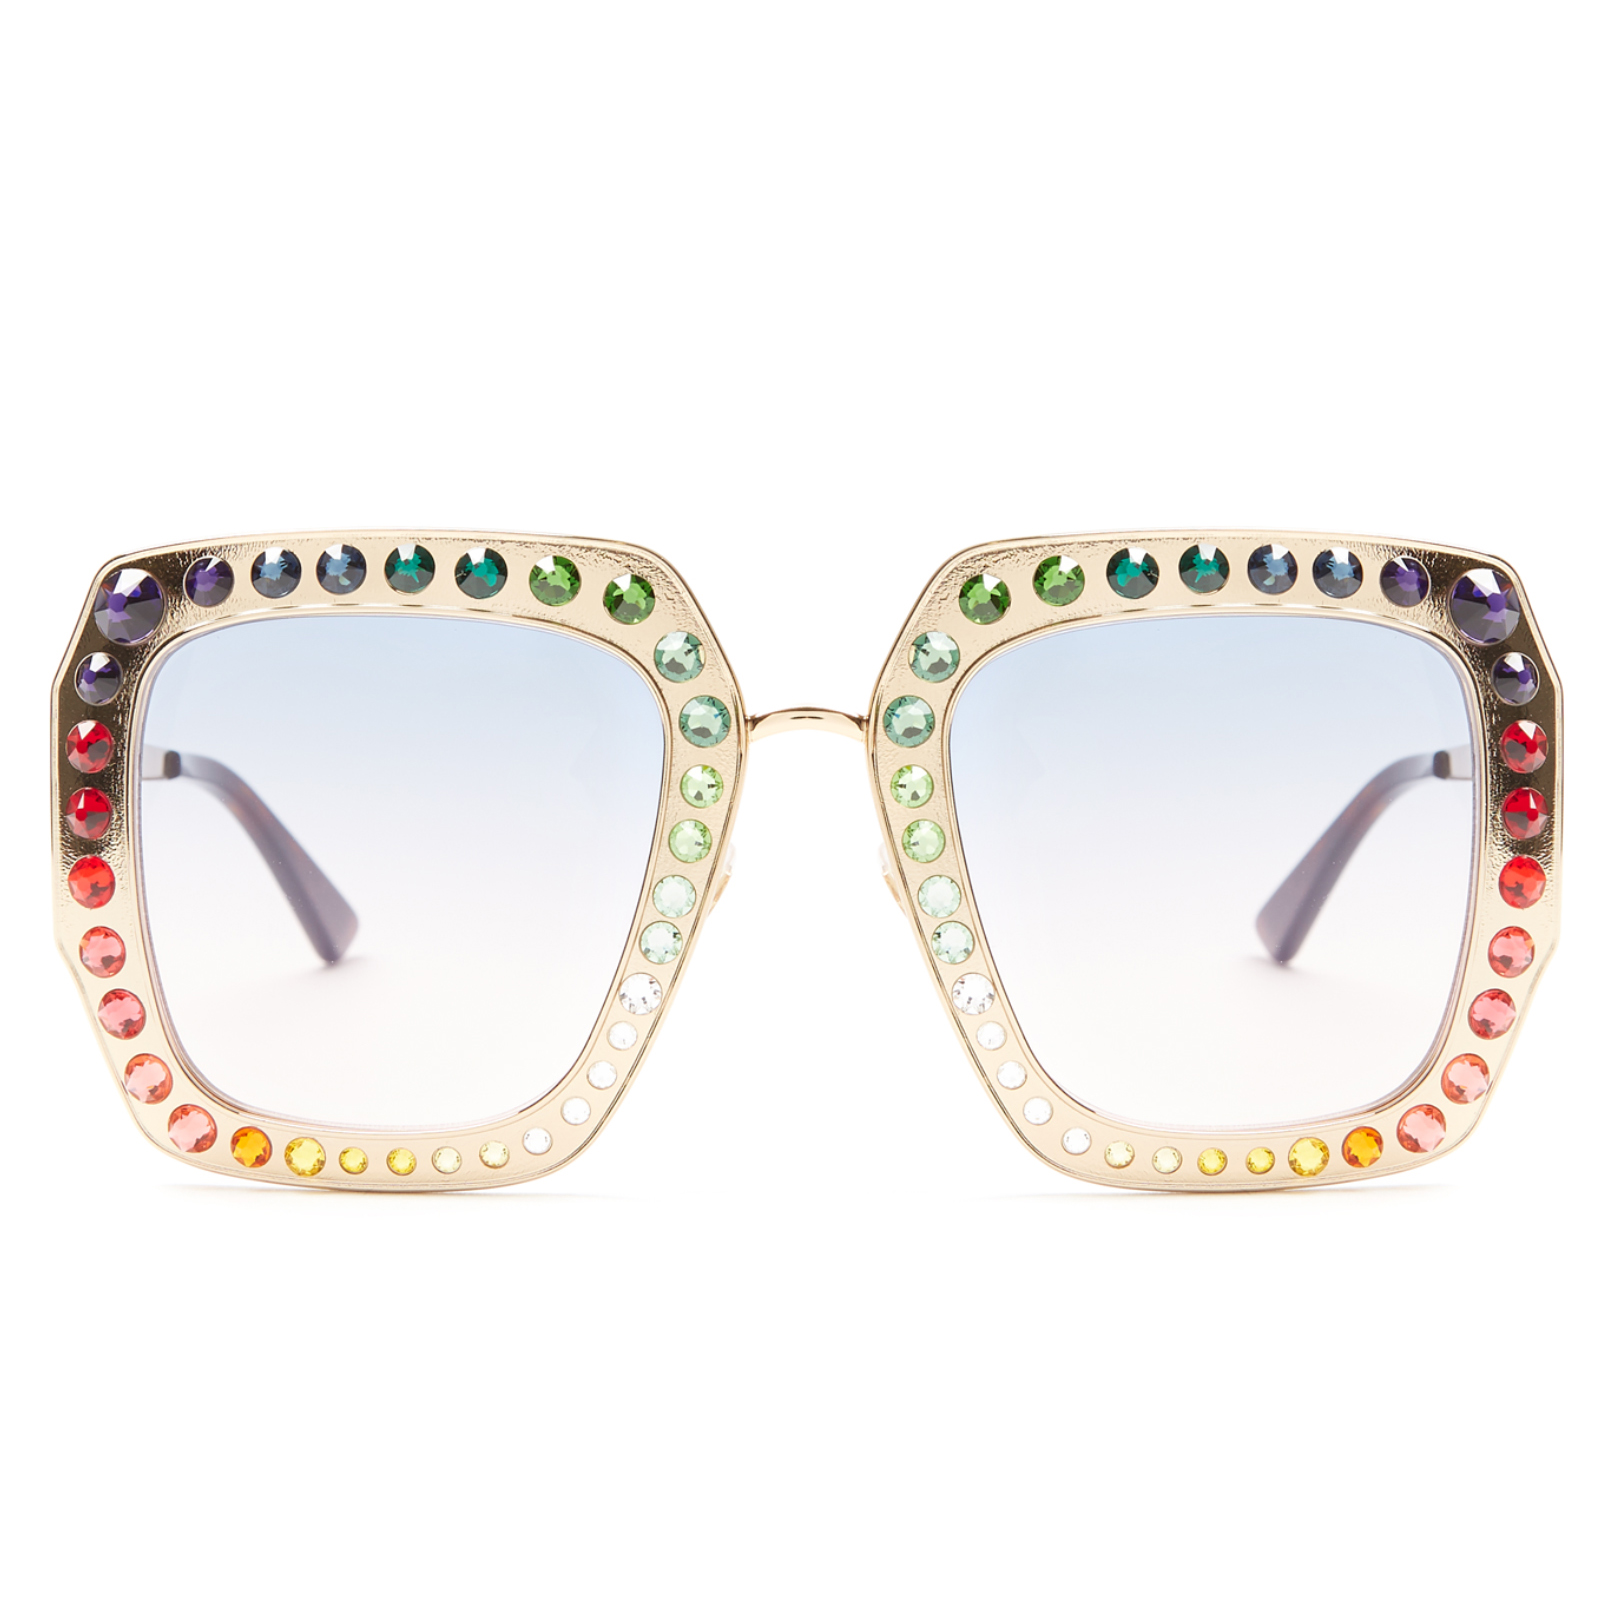 Guess Where Rihanna's Crop Over Glasses Are From? Embellished Sunglasses Gucci Buy Online